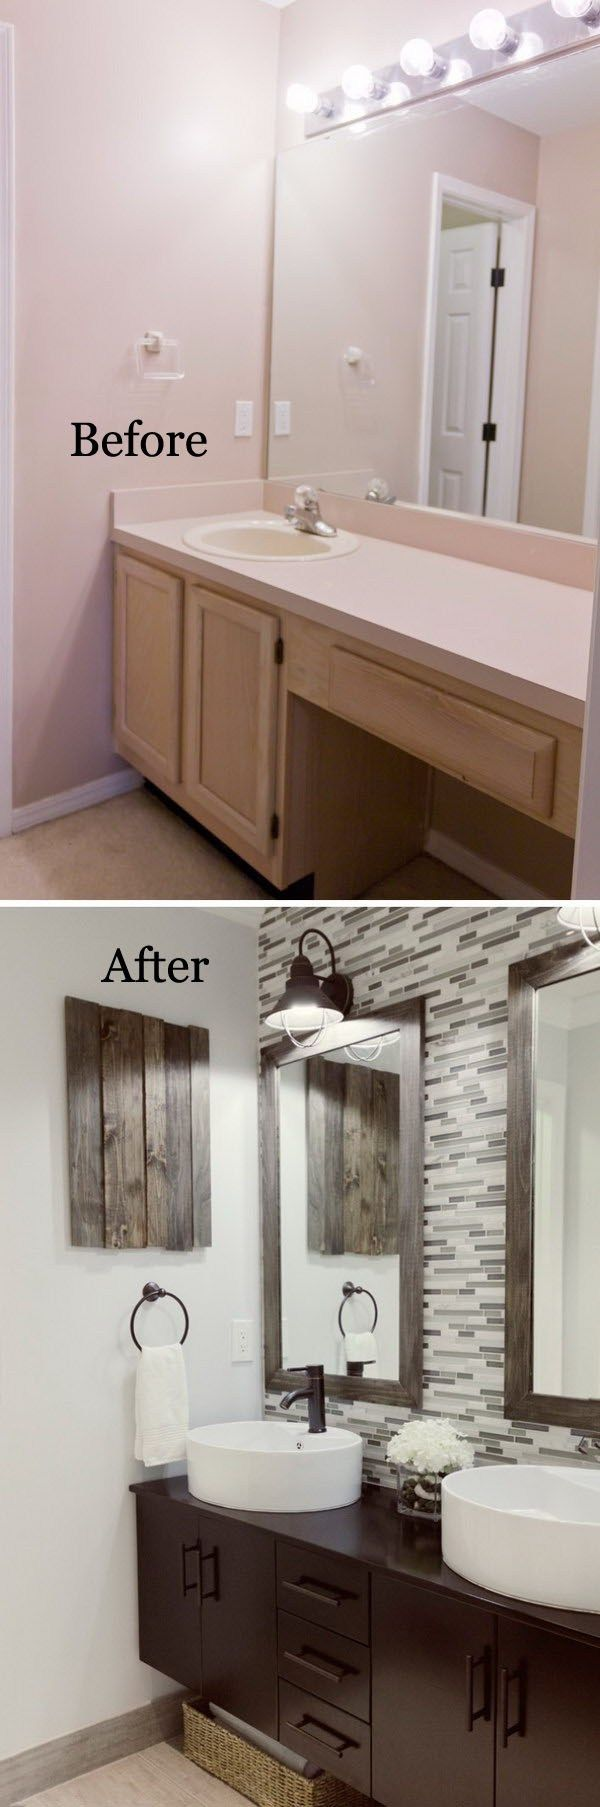 Magnificent 37 Small Bathroom Makeovers Before And After Pics Bath Best Image Libraries Thycampuscom